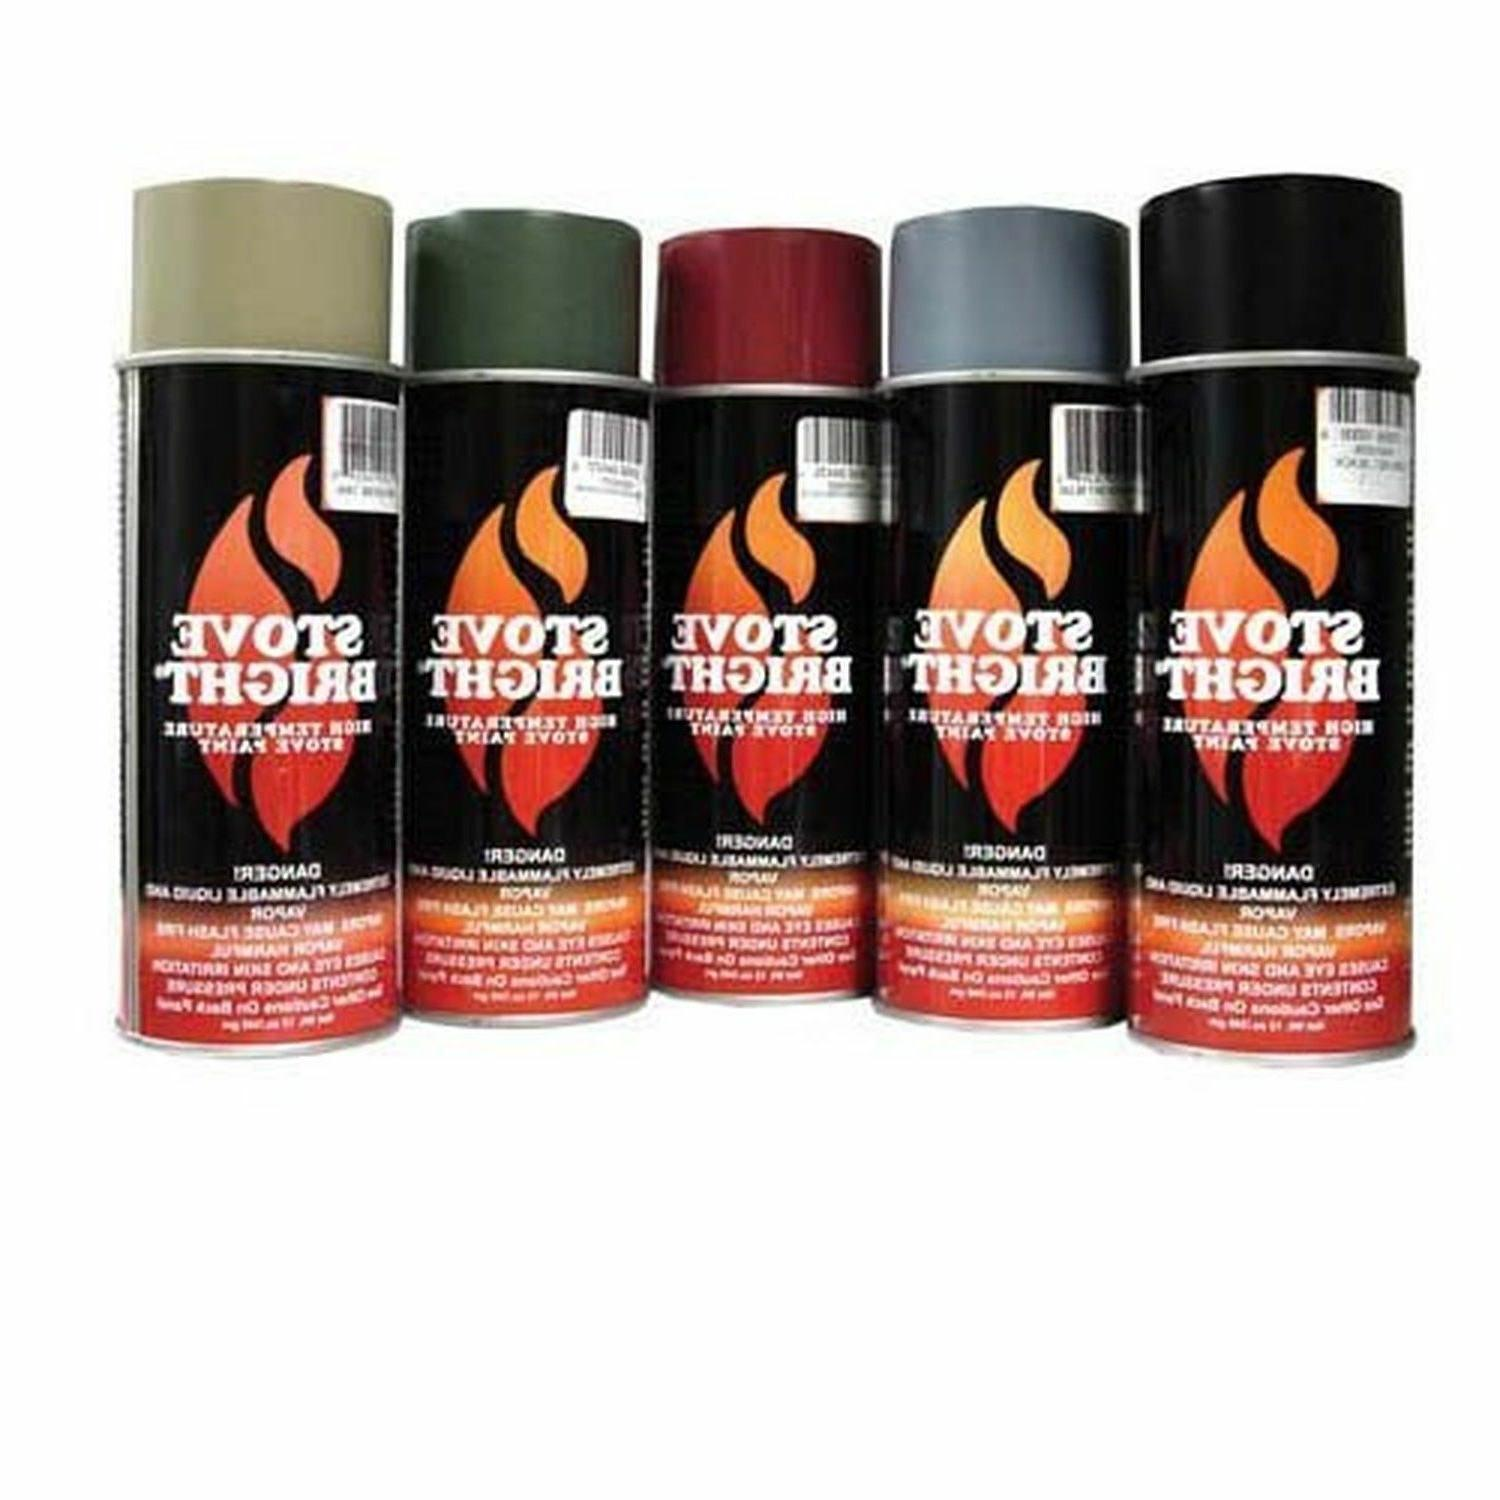 Stove Bright #6309 High Temp 12oz. Aerosol Can Stove Paint-